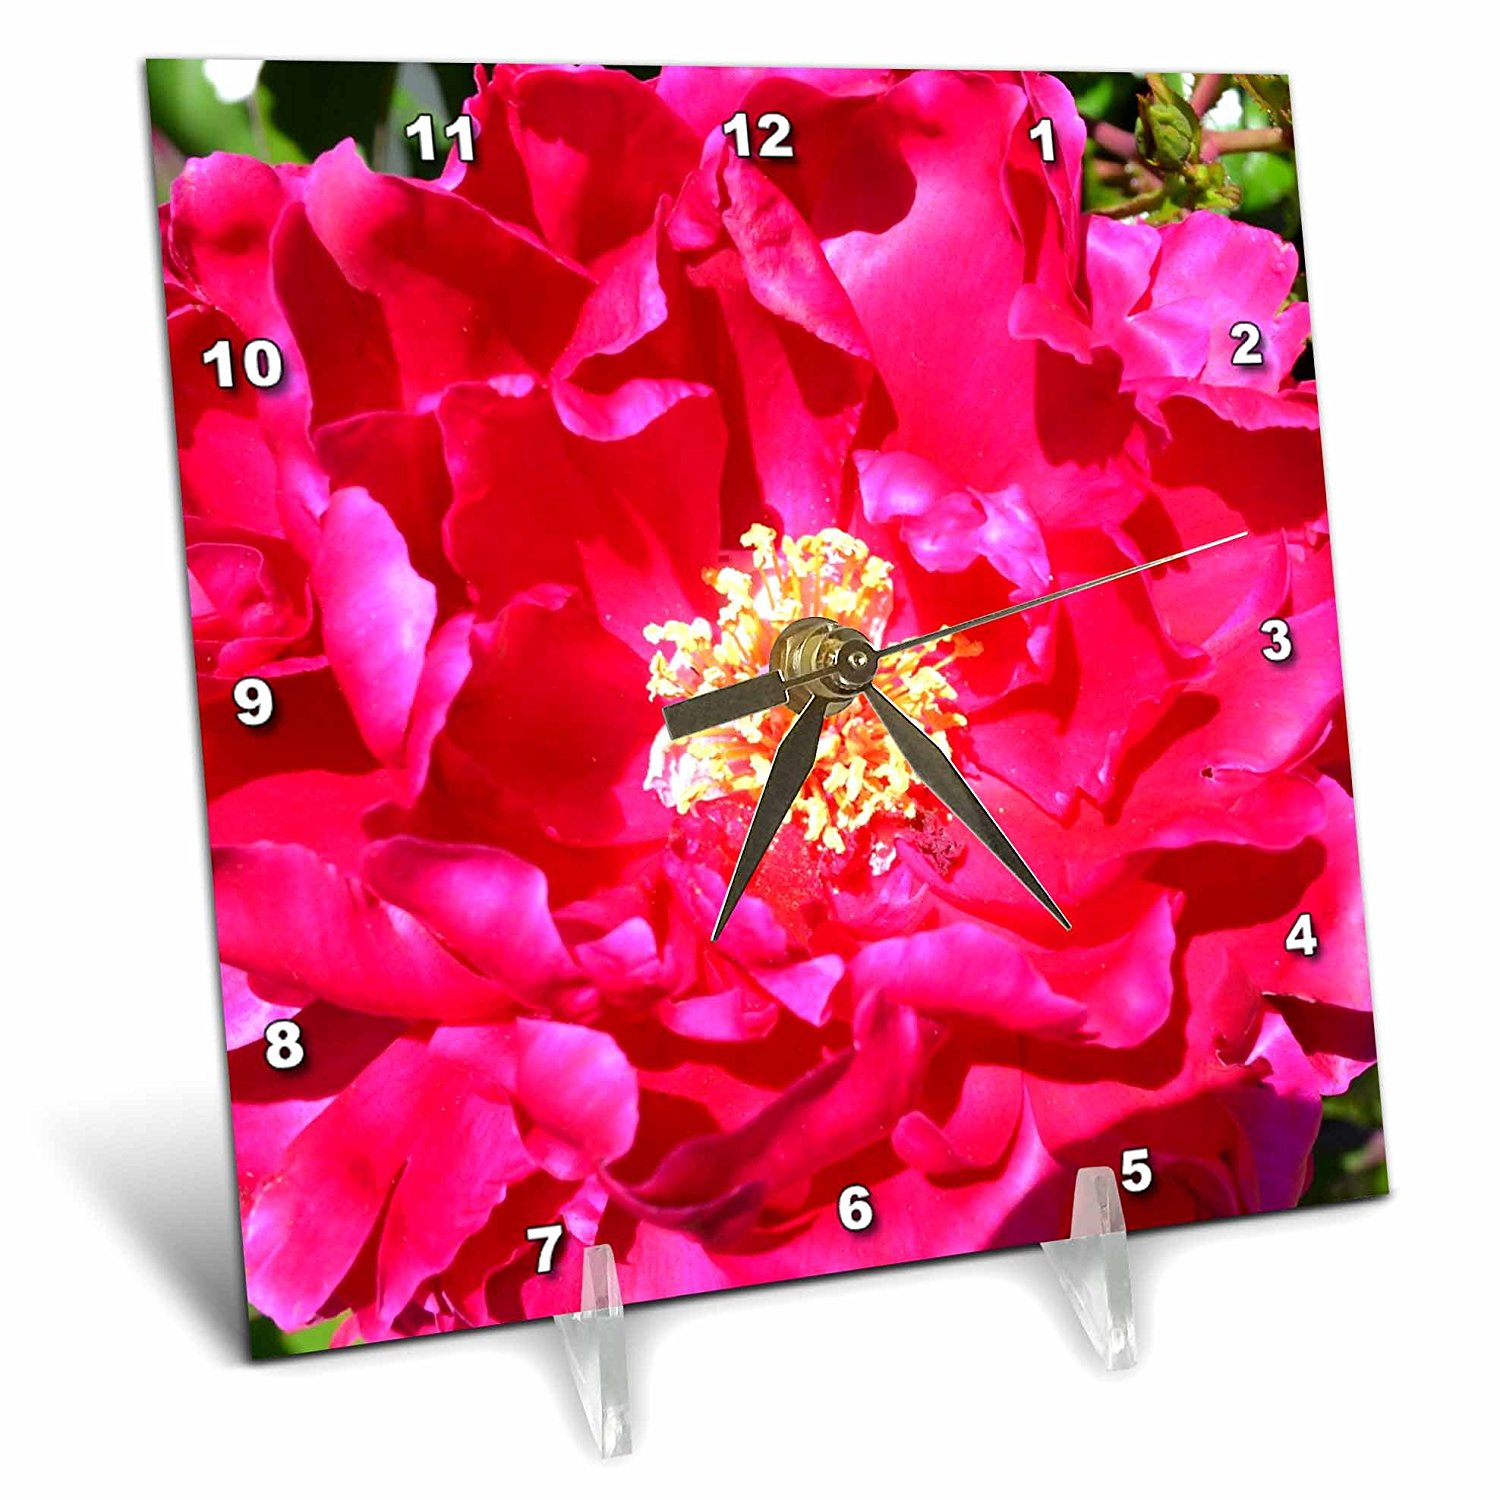 3dRose dc_27544_1 Red Wild Rose Floral-Desk Clock, 6 by 6-Inch